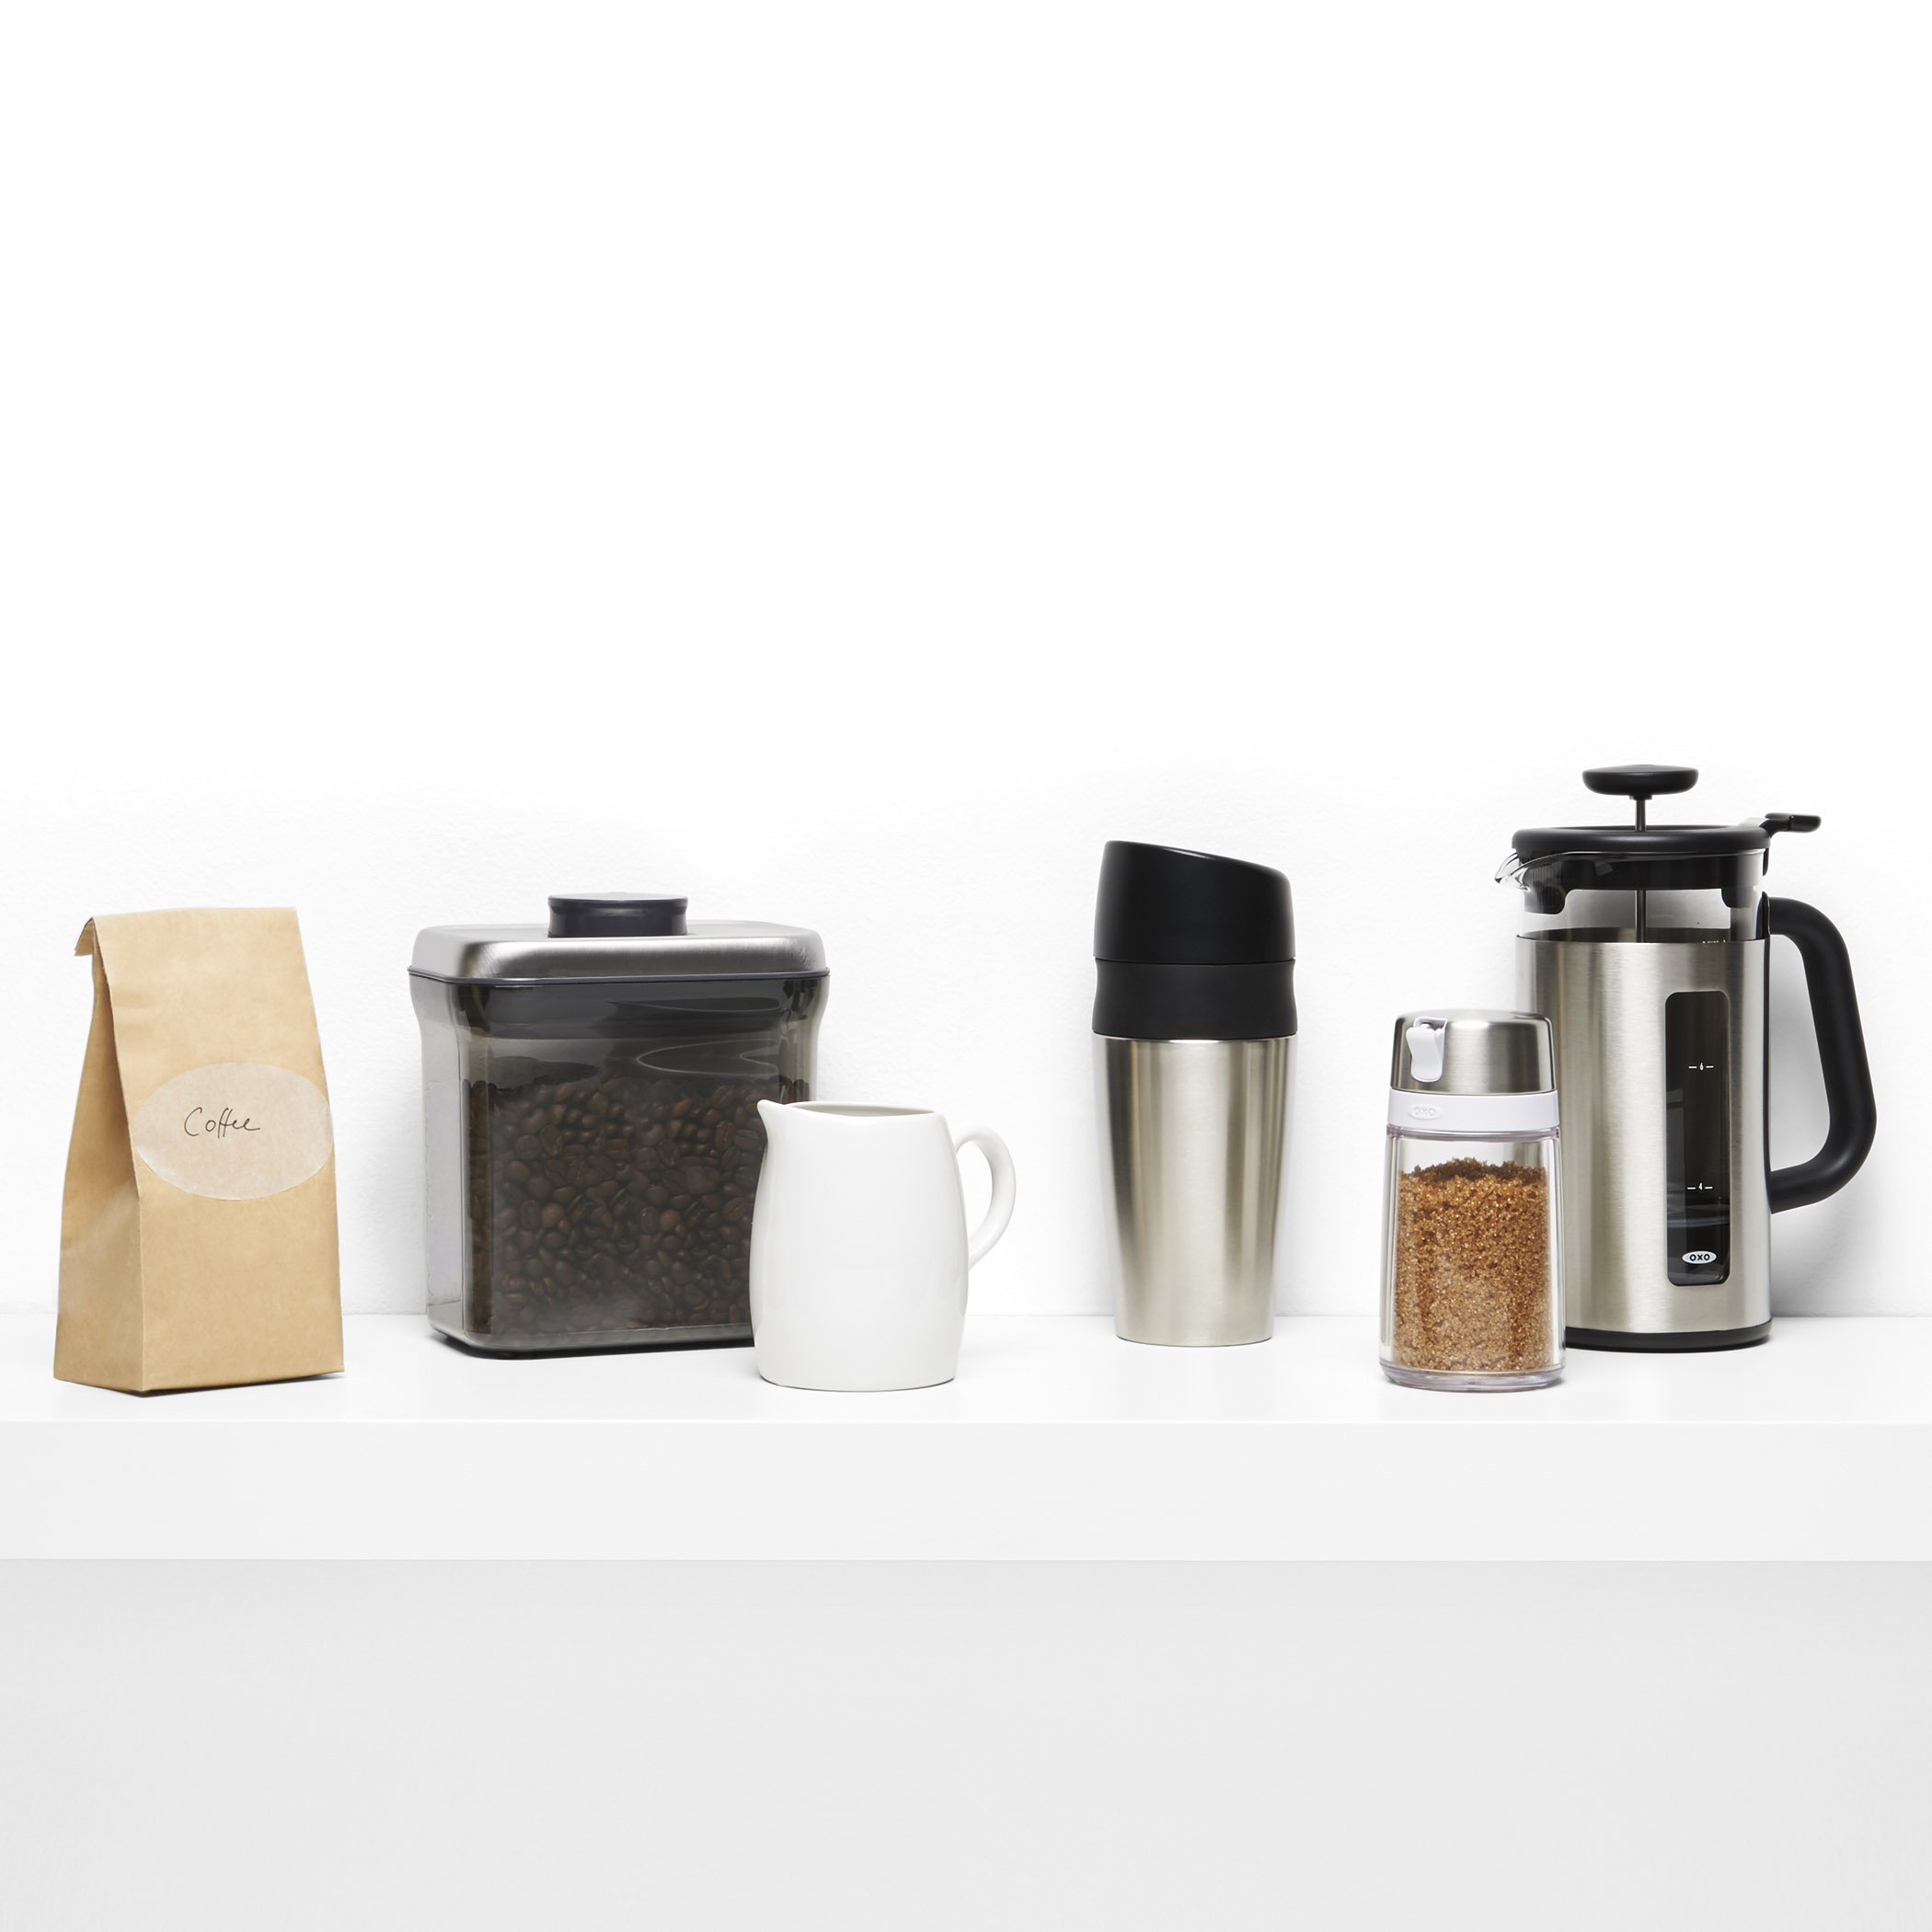 Stainless Steel Restaurant Sugar Dispenser With Side Spout